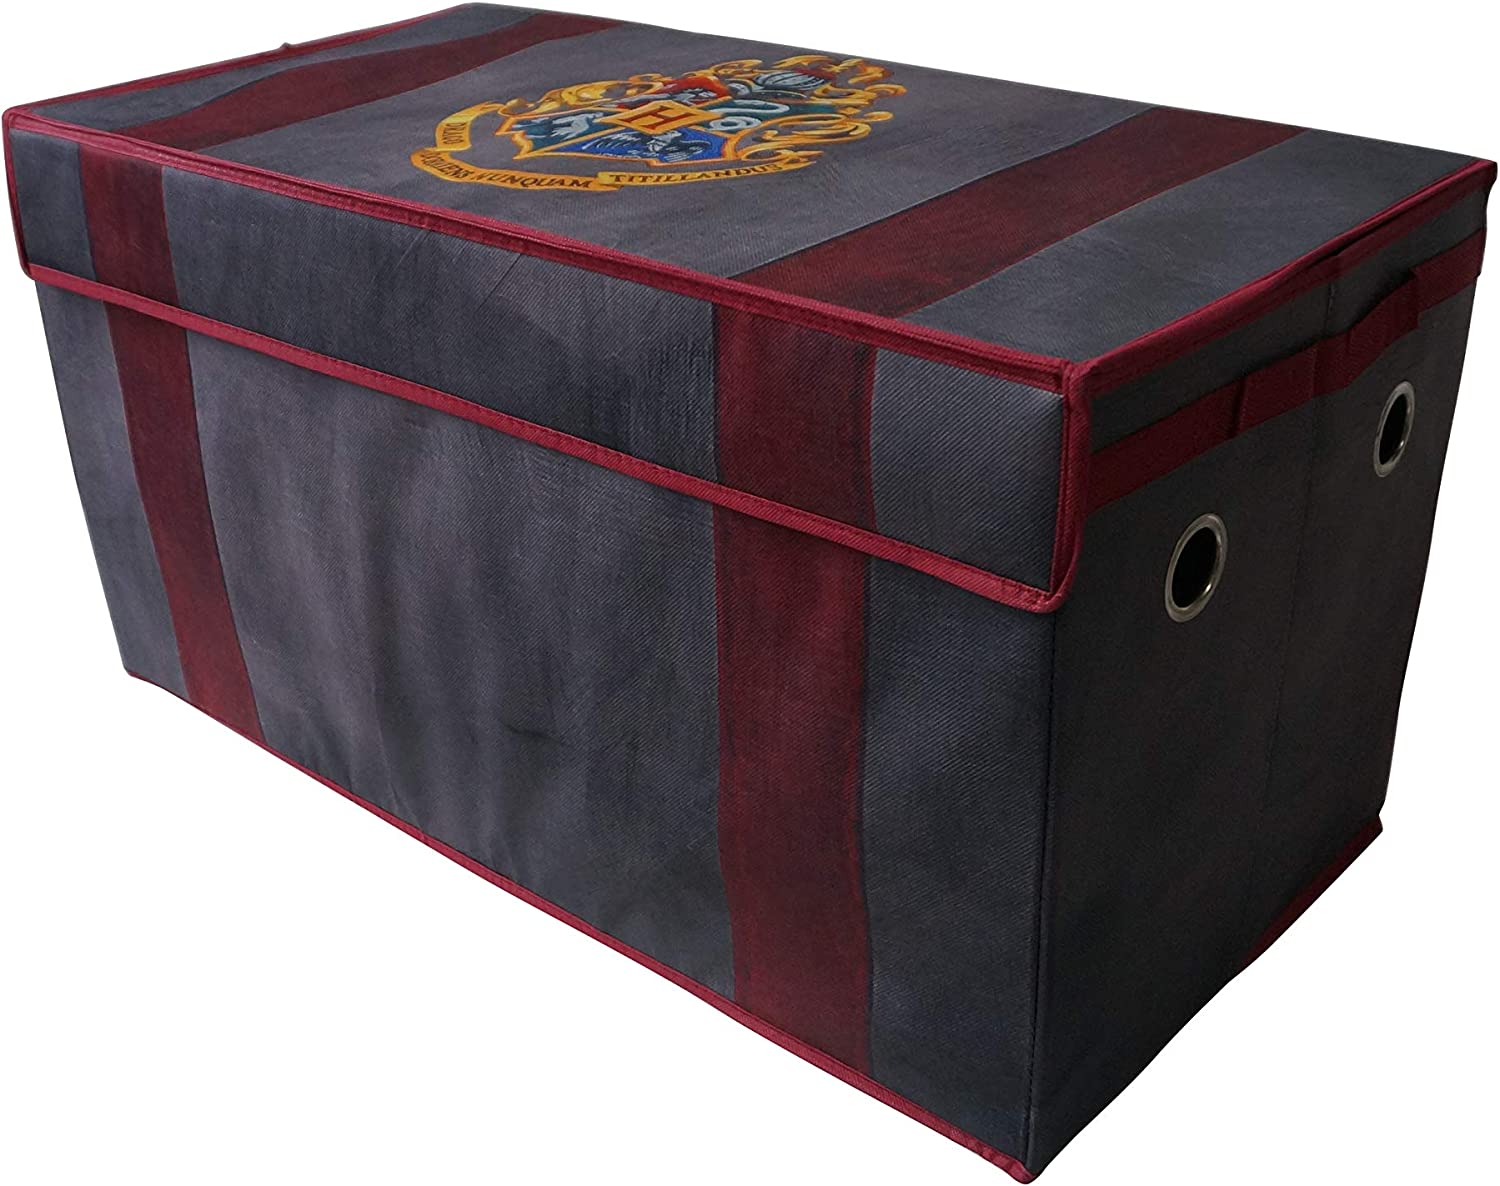 HARRY POTTER Soft Collapsible Storage Trunk with Lid, 30